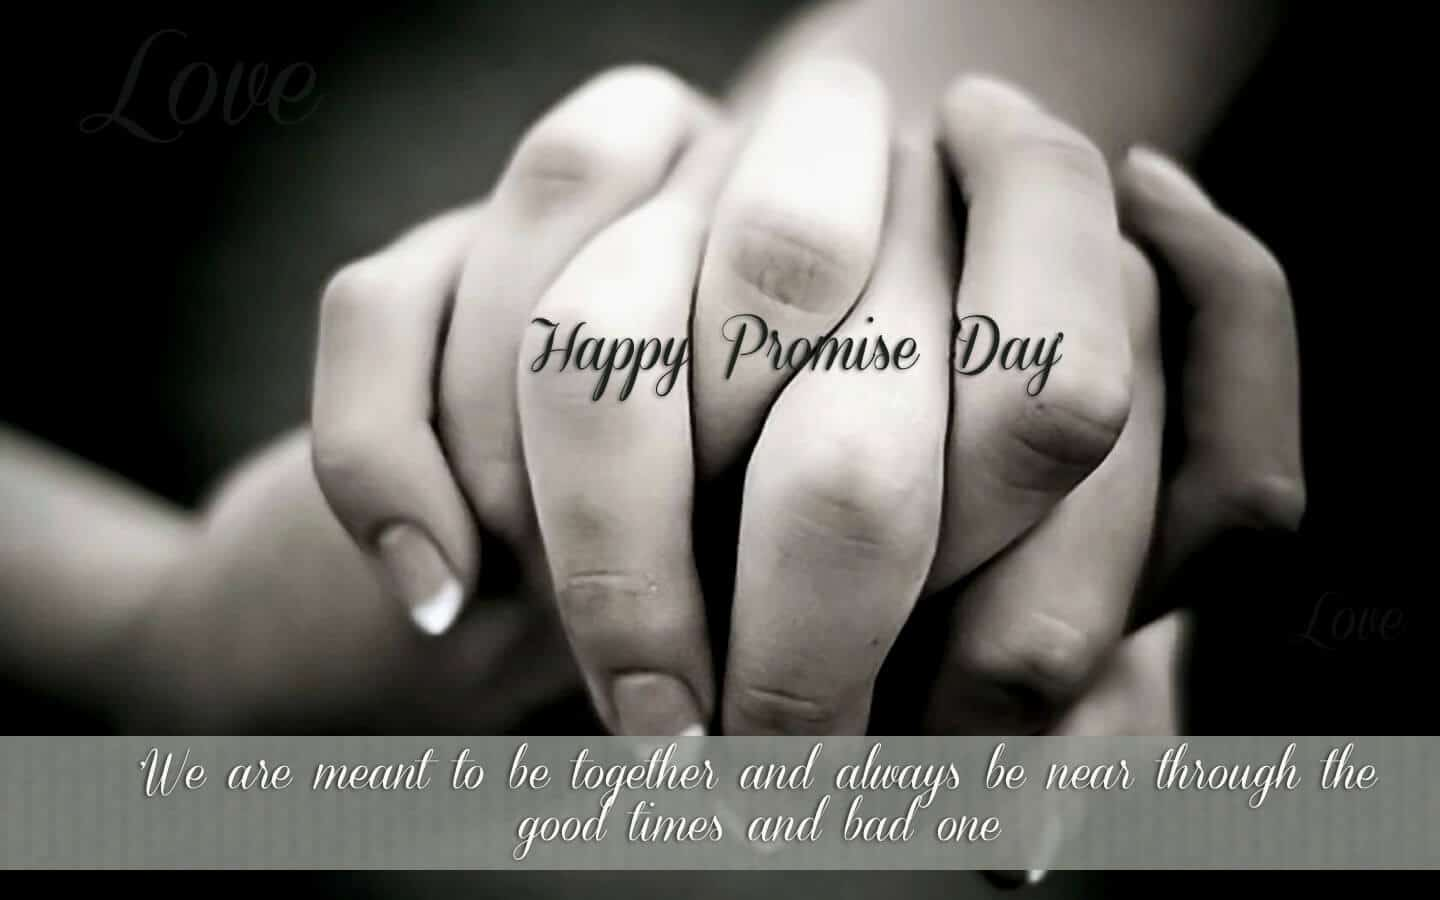 Happy Promise Day images 17